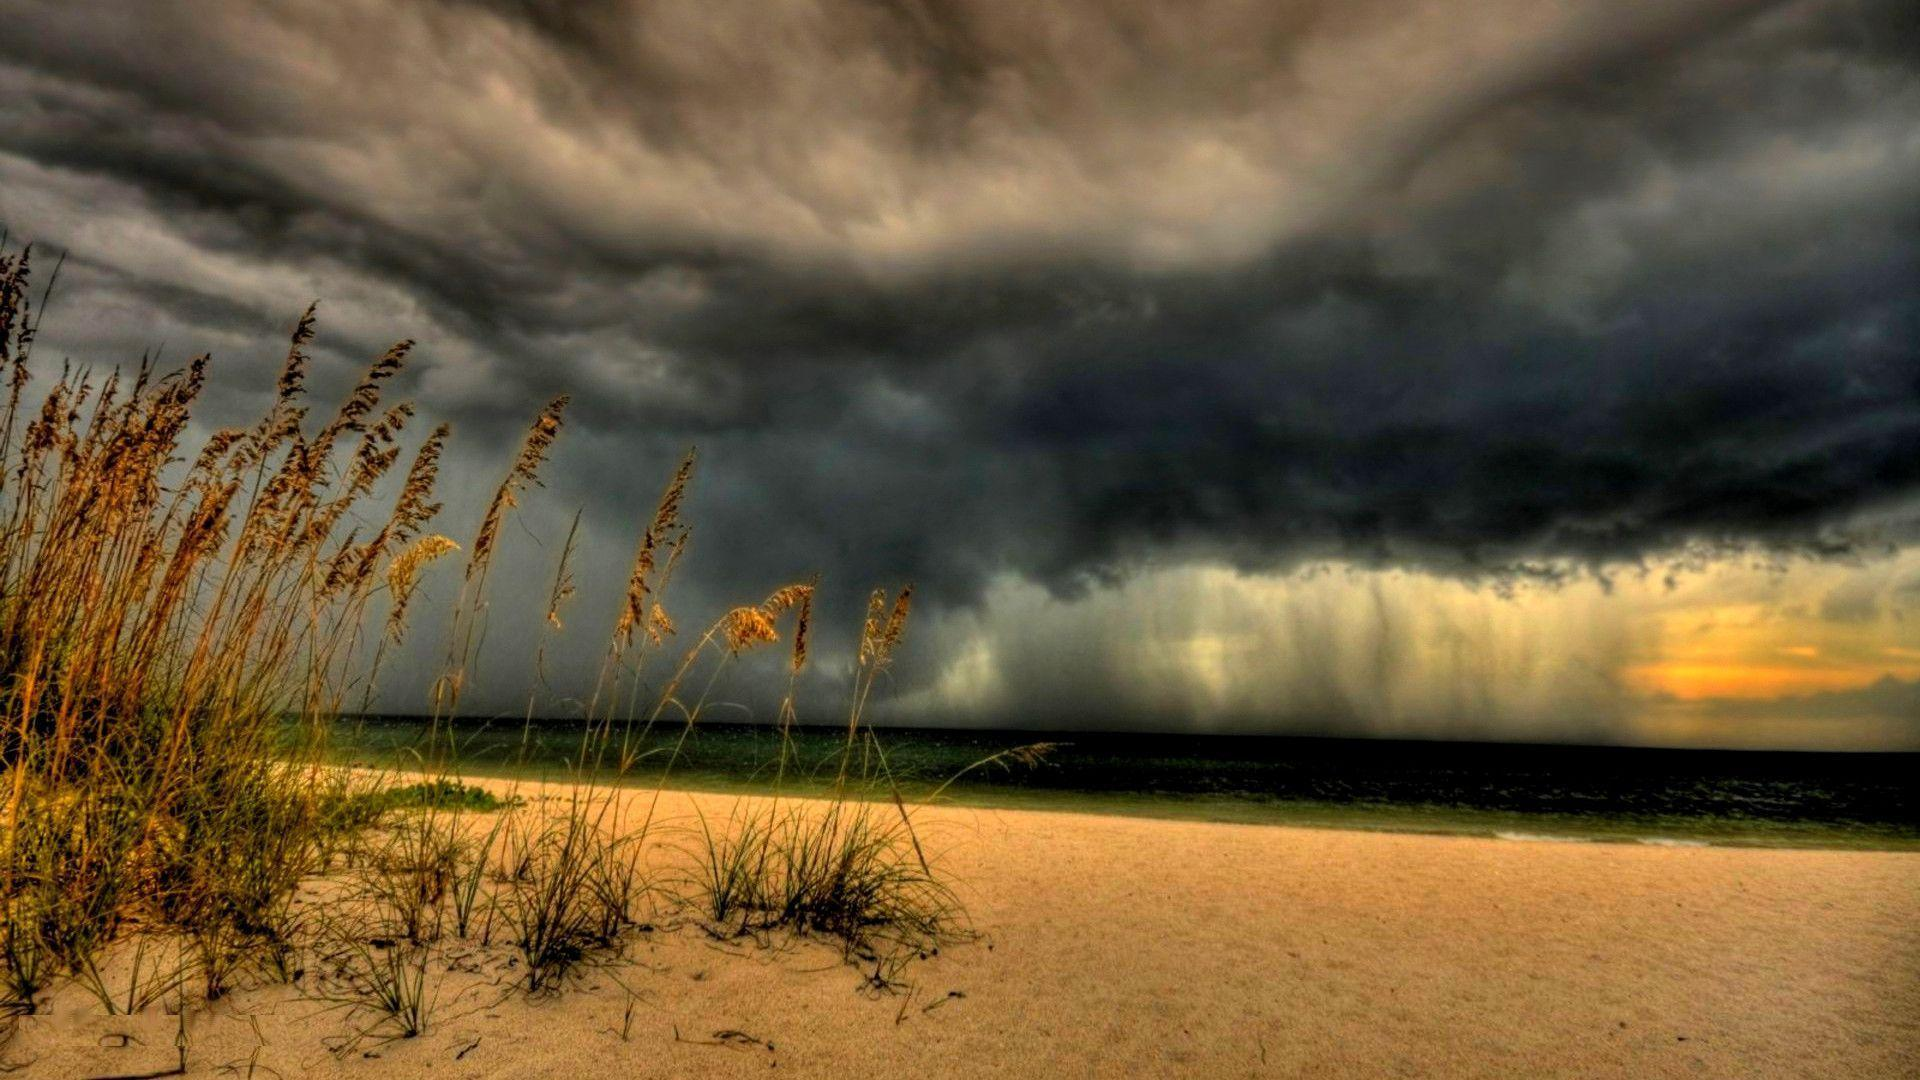 Hd Thunderstorm Wallpapers: Free Thunderstorm Wallpapers